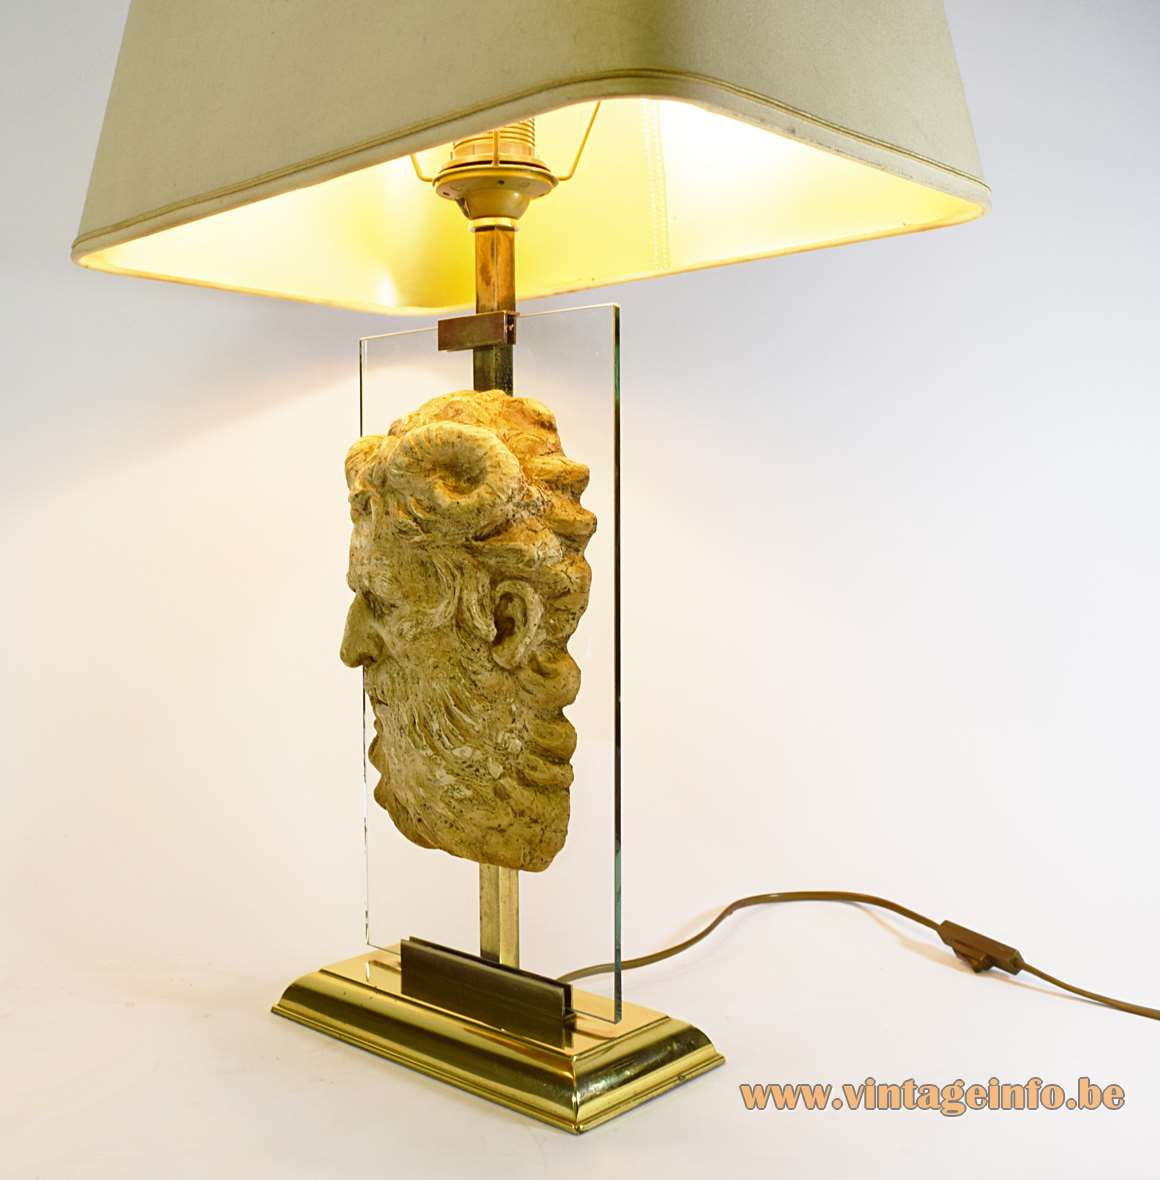 Satyr Table Lamp glass plate stone head sculpture brass base Hollywood Regency Le Dauphin France